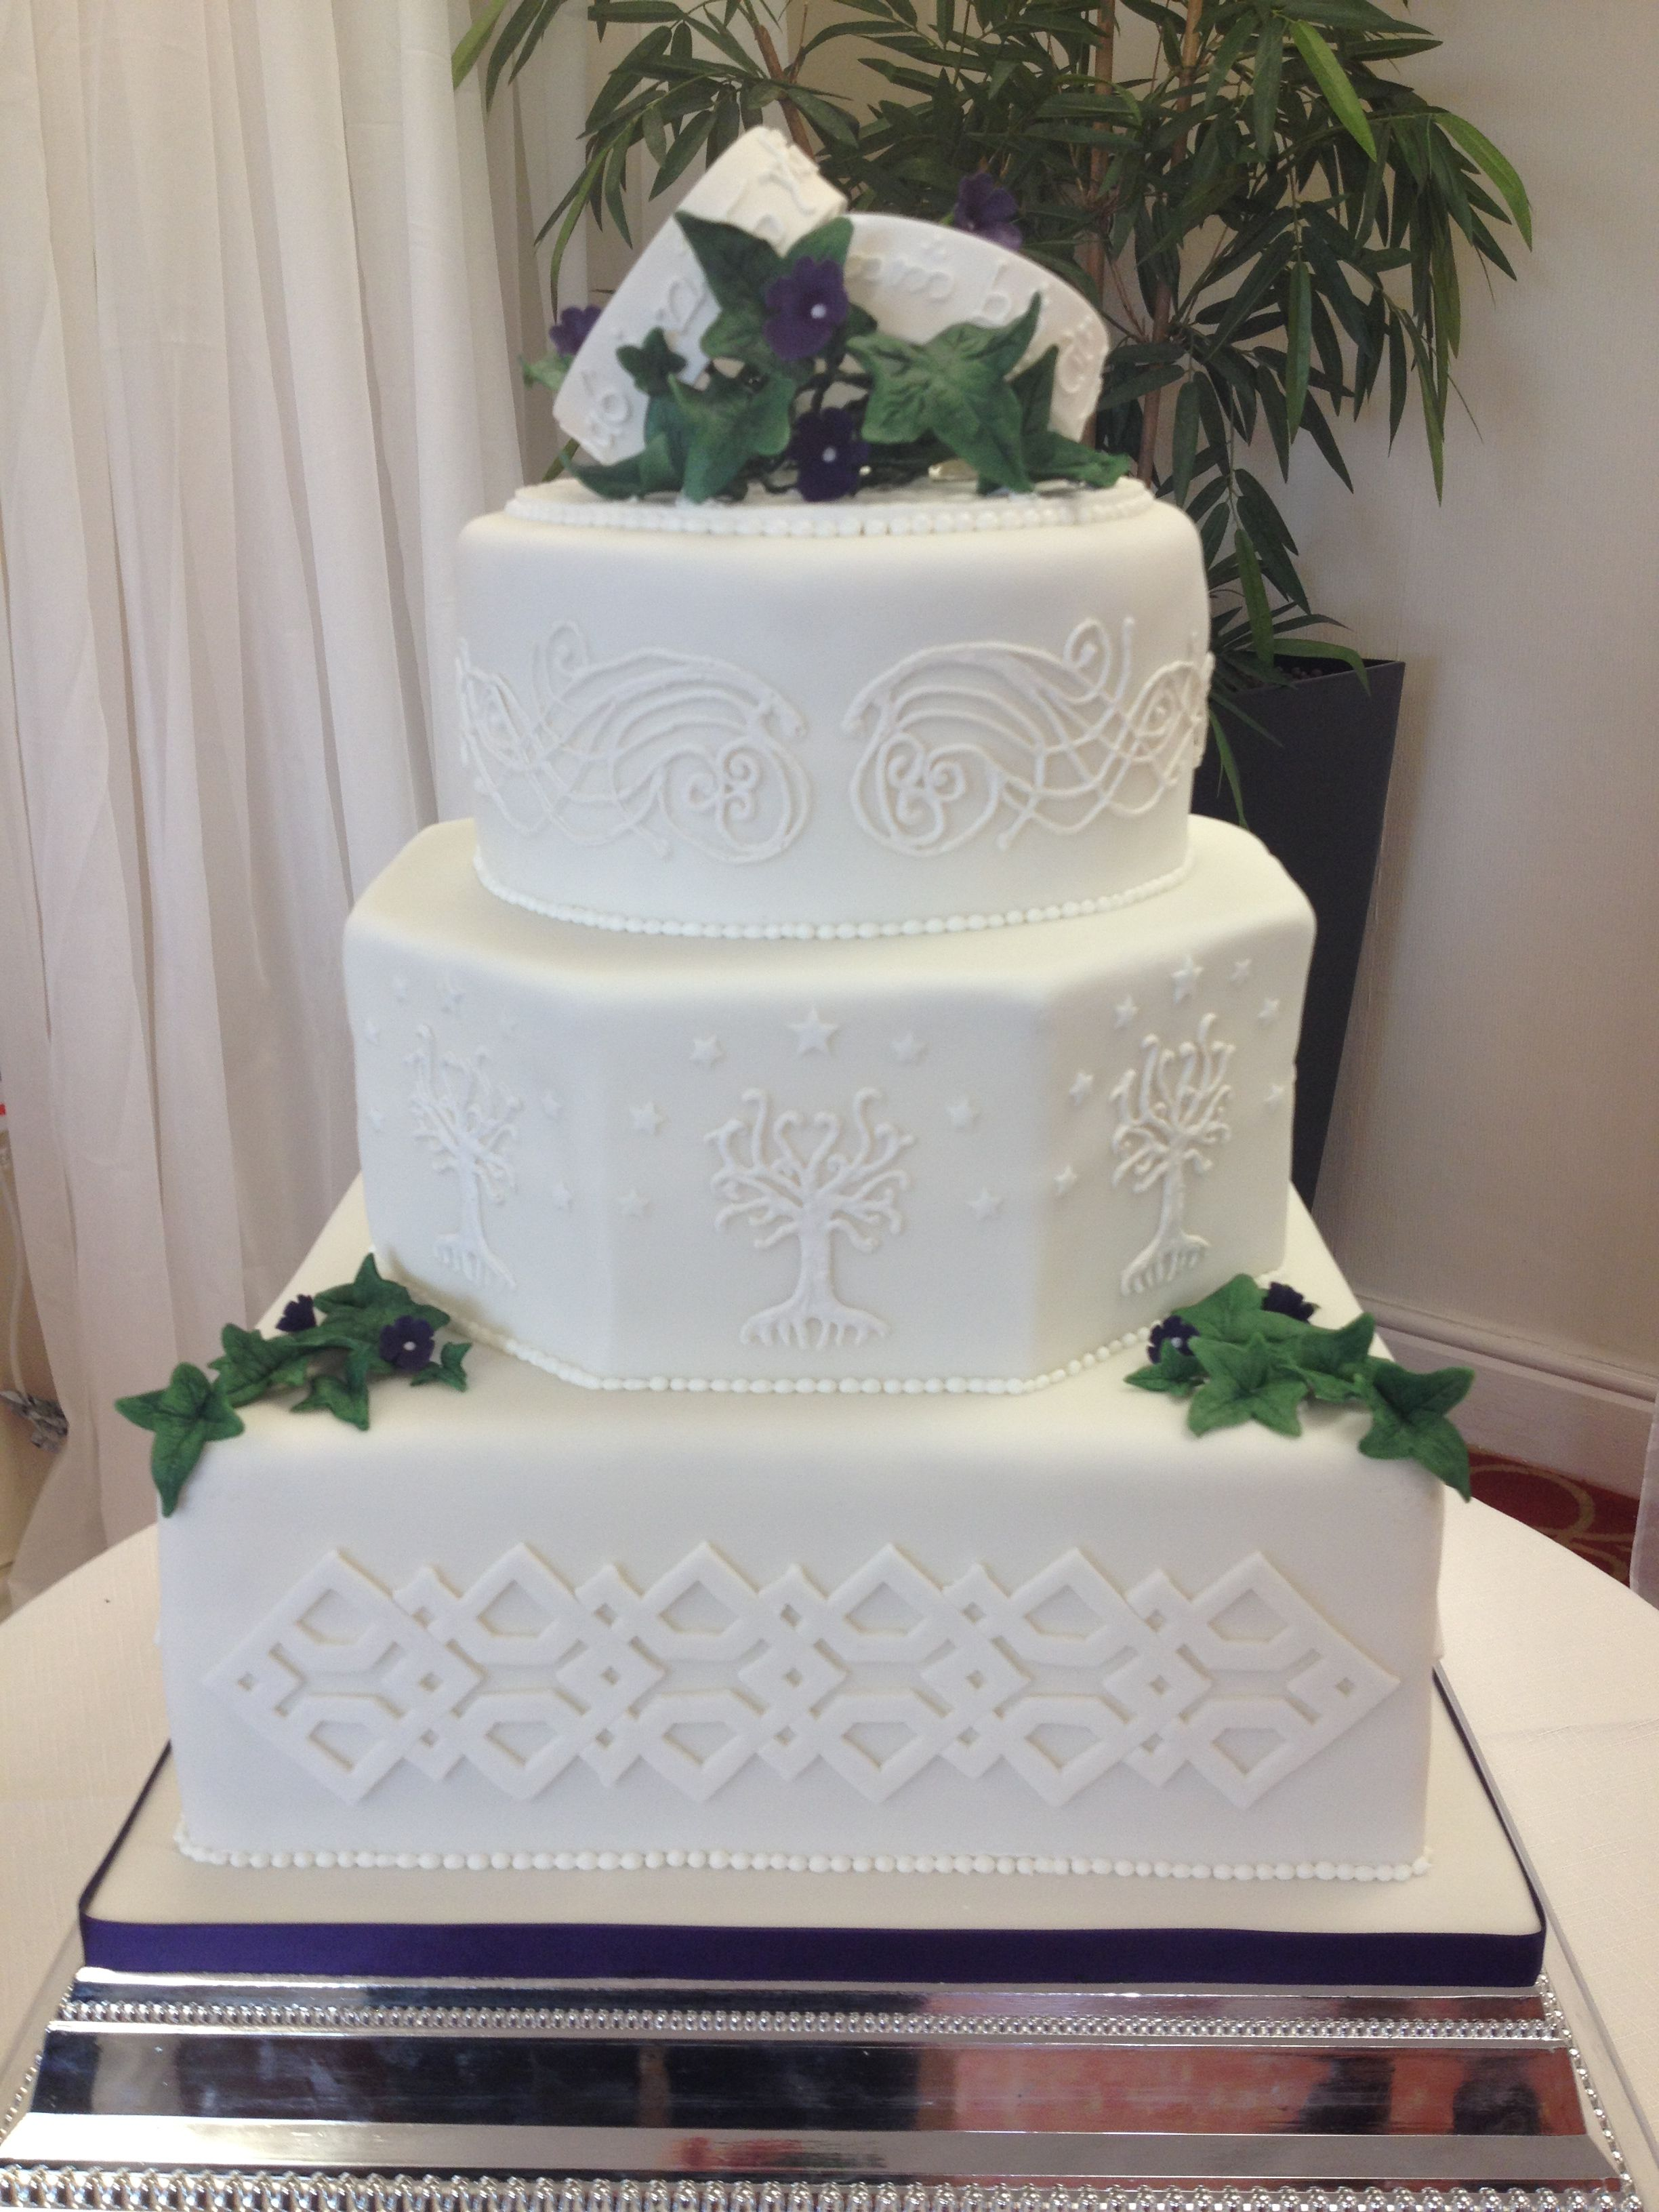 Lord of the Rings inspired wedding cake. Inspiration for Base tier ...